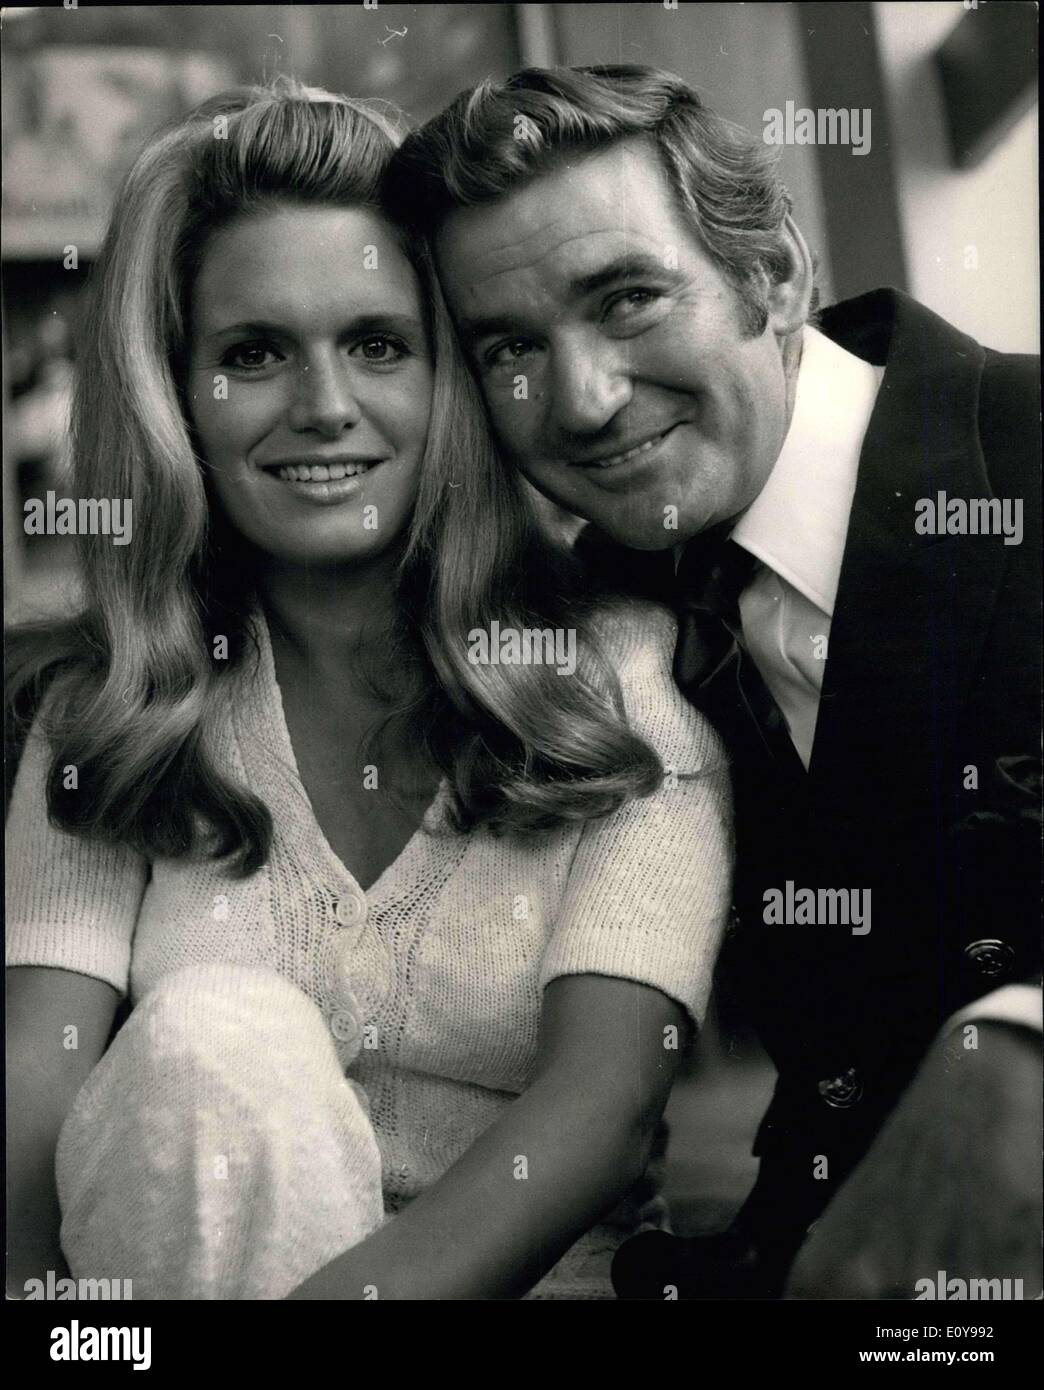 May 18, 1969 - Reception For Rod Taylor And Carol White - Stars Of The New Film ''The Man Who Had Power Over Women'' A press reception was held at the Playboy Club in Park Lane today for Carol White, (star of the TV production ''Cathy, Come Home'' and ''Poor Cow'') and Rod Taylor, who will co-star in the new Avco Embassy film ''The Man Who Had Power Over Women''. Shooting stars tomorrow in London. Photo Shows: Rod Taylor and Carol White pictured at today's press reception at the playboy club. - Stock Image